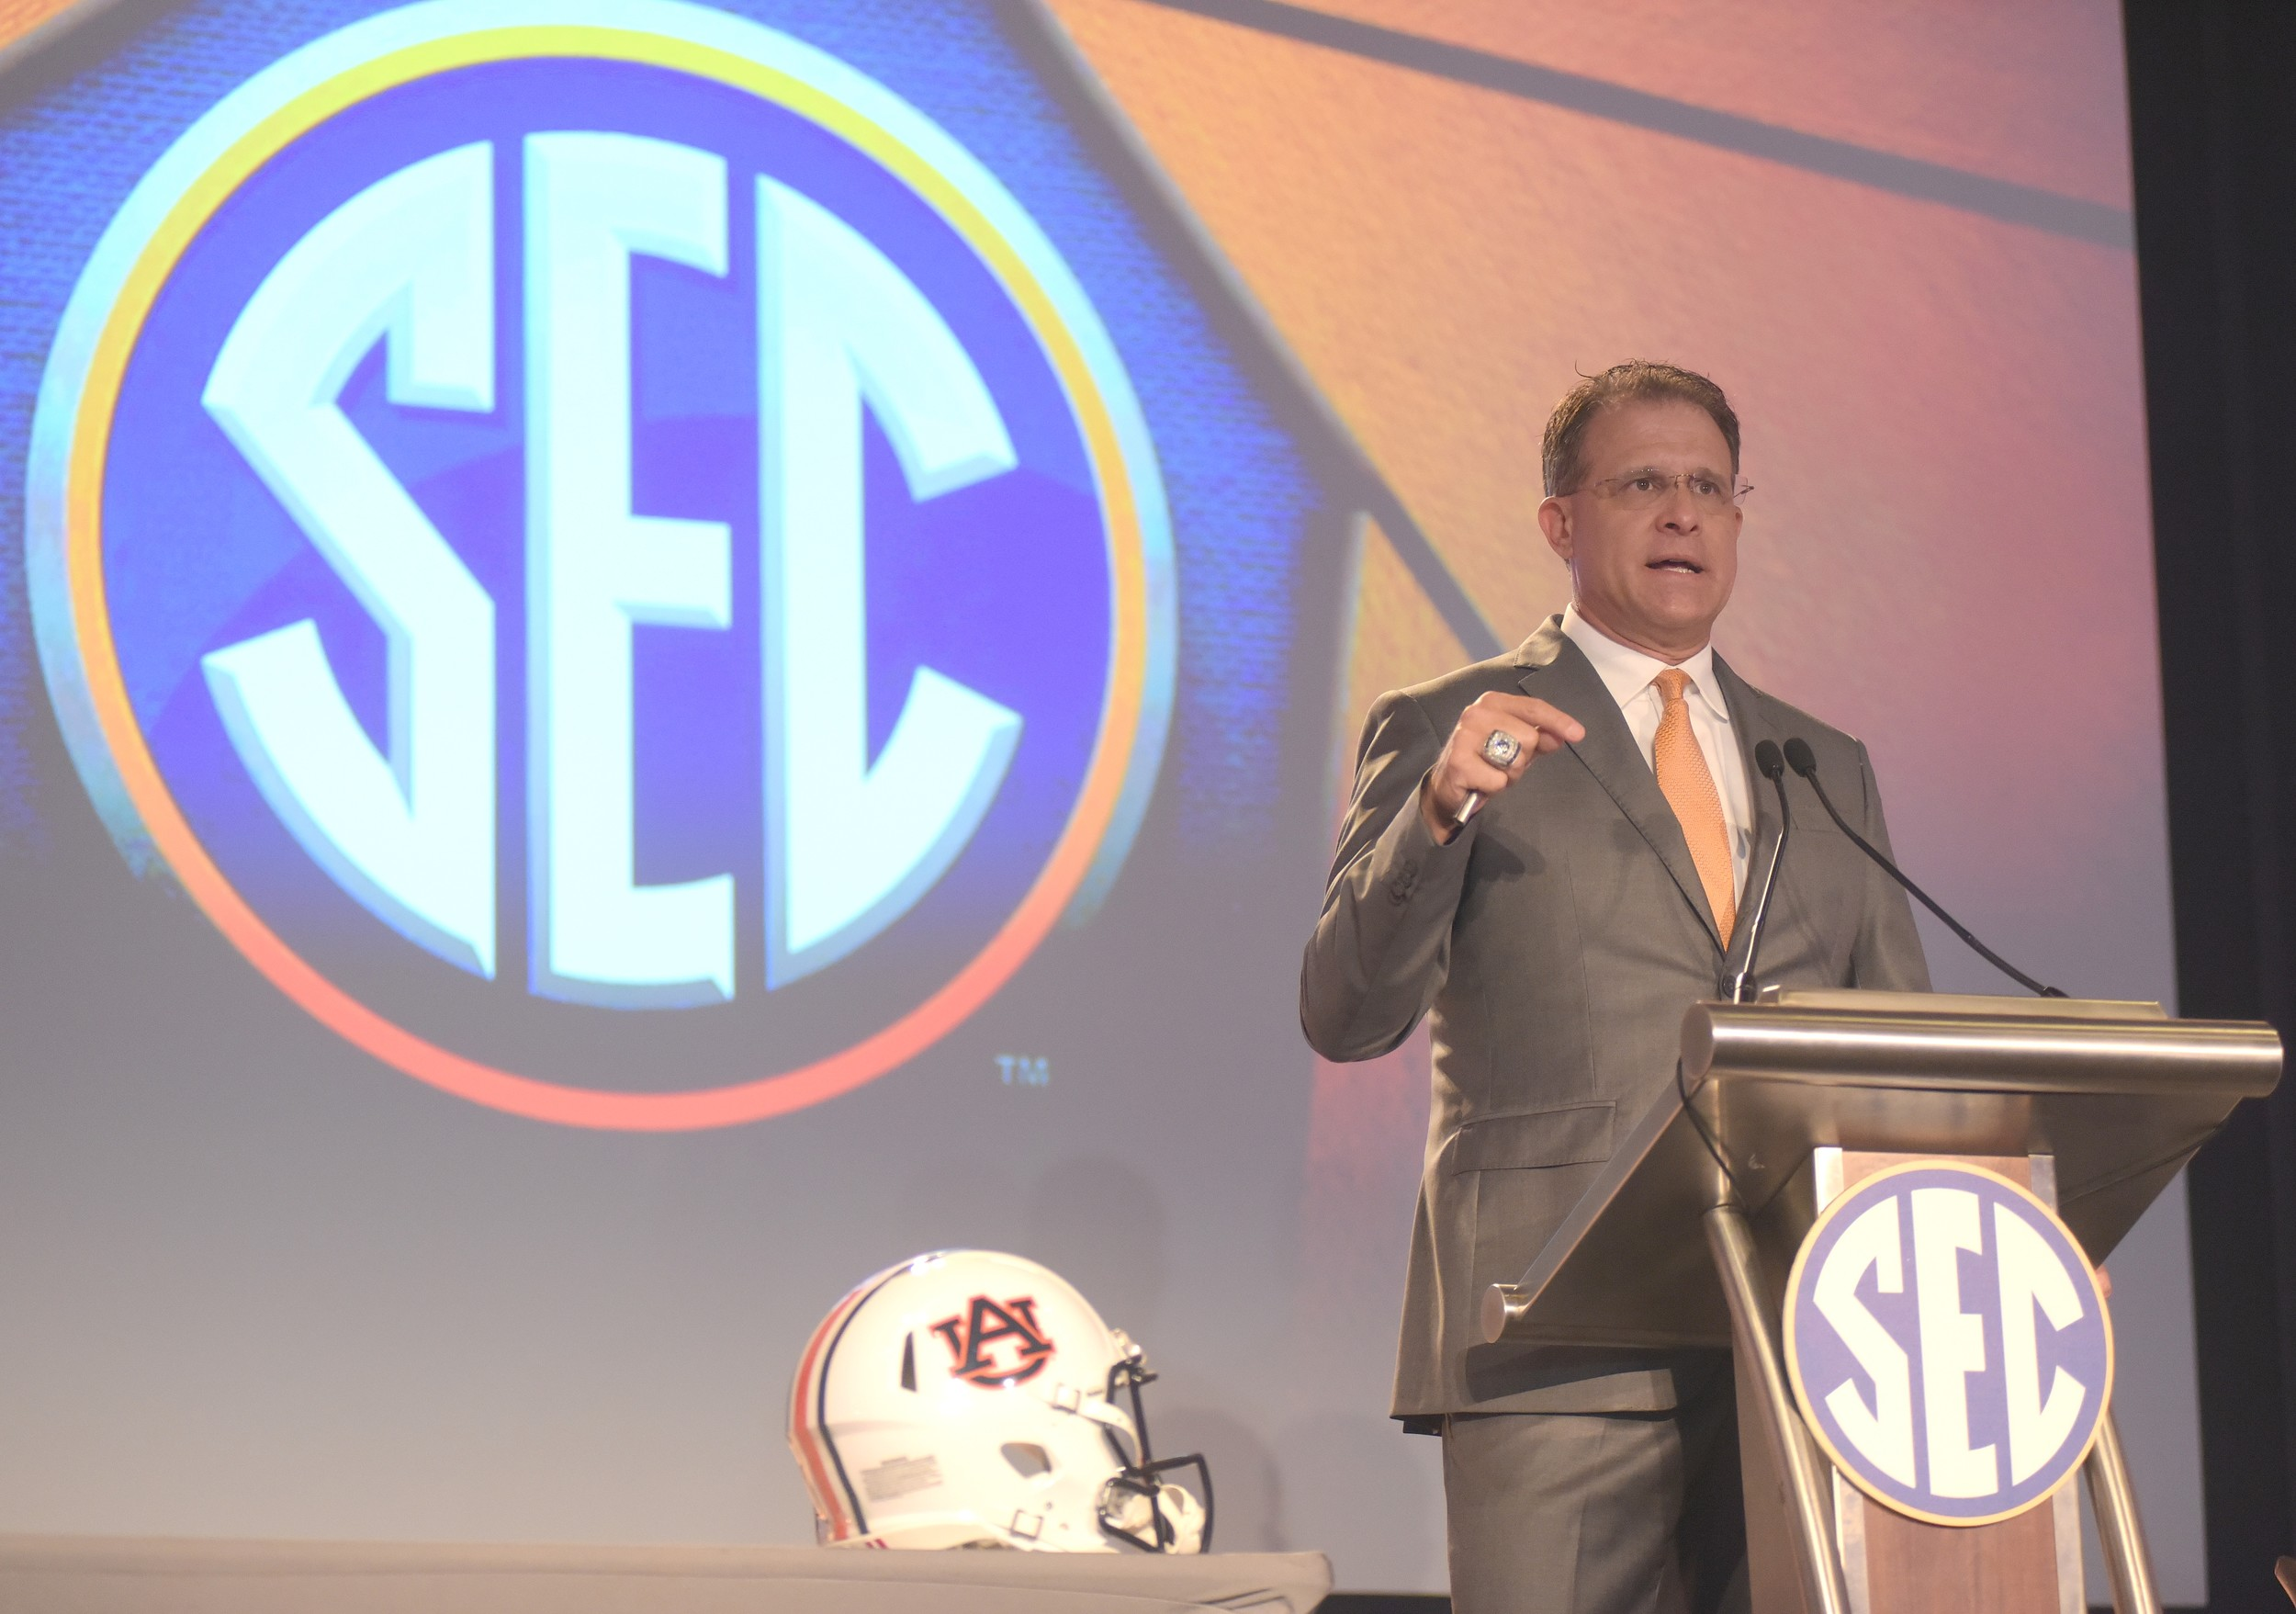 Auburn football coach Gus Malzahn speaks during day 4 of SEC Media Days Thursday at the Hyatt Recency - The Wynfrey Hotel in Hoover. Along with Malzahn, South Carolina's Will Muschamp and Ole Miss' Hugh Freeze addressed the media on Thursday.